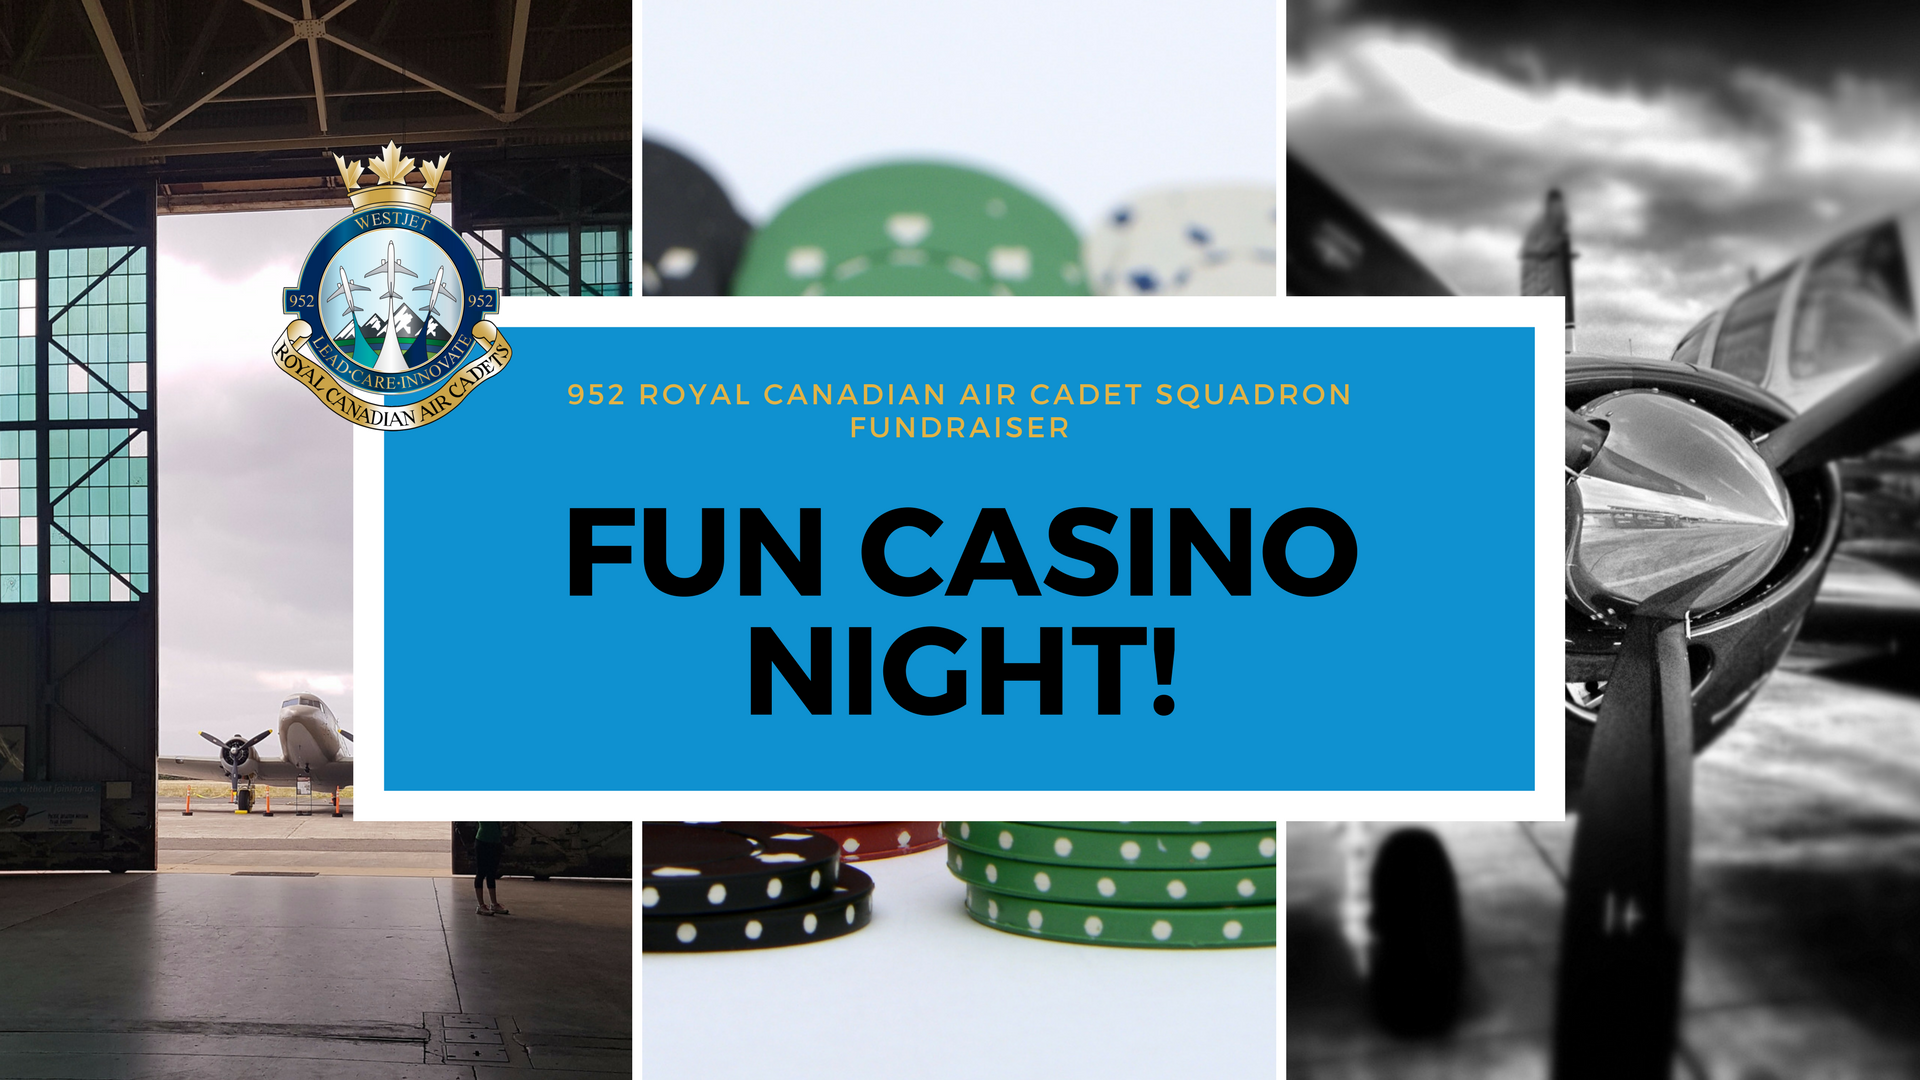 Thanks to everyone who came out to make this event a success!   Come join us for a fun night on Saturday February 24th from 7pm - 11pm to support the 952 Royal Canadian Air Cadet Squadron!  Hosted by the Squadron Sponsoring Committee, the evening will include a fun money casino, silent auction and more. Help us raise funds for a special trip for our 952 Royal Canadian Air Cadet Squadron.  Cash bar. Light hors d'oeurvres. Complimentary parking on site.  This is an adults (18+) only event open to members and invited guests only.  Please note that the event entrance will be by the southeast entry of the Naval Museum (not the main museum entry). Follow the signs.